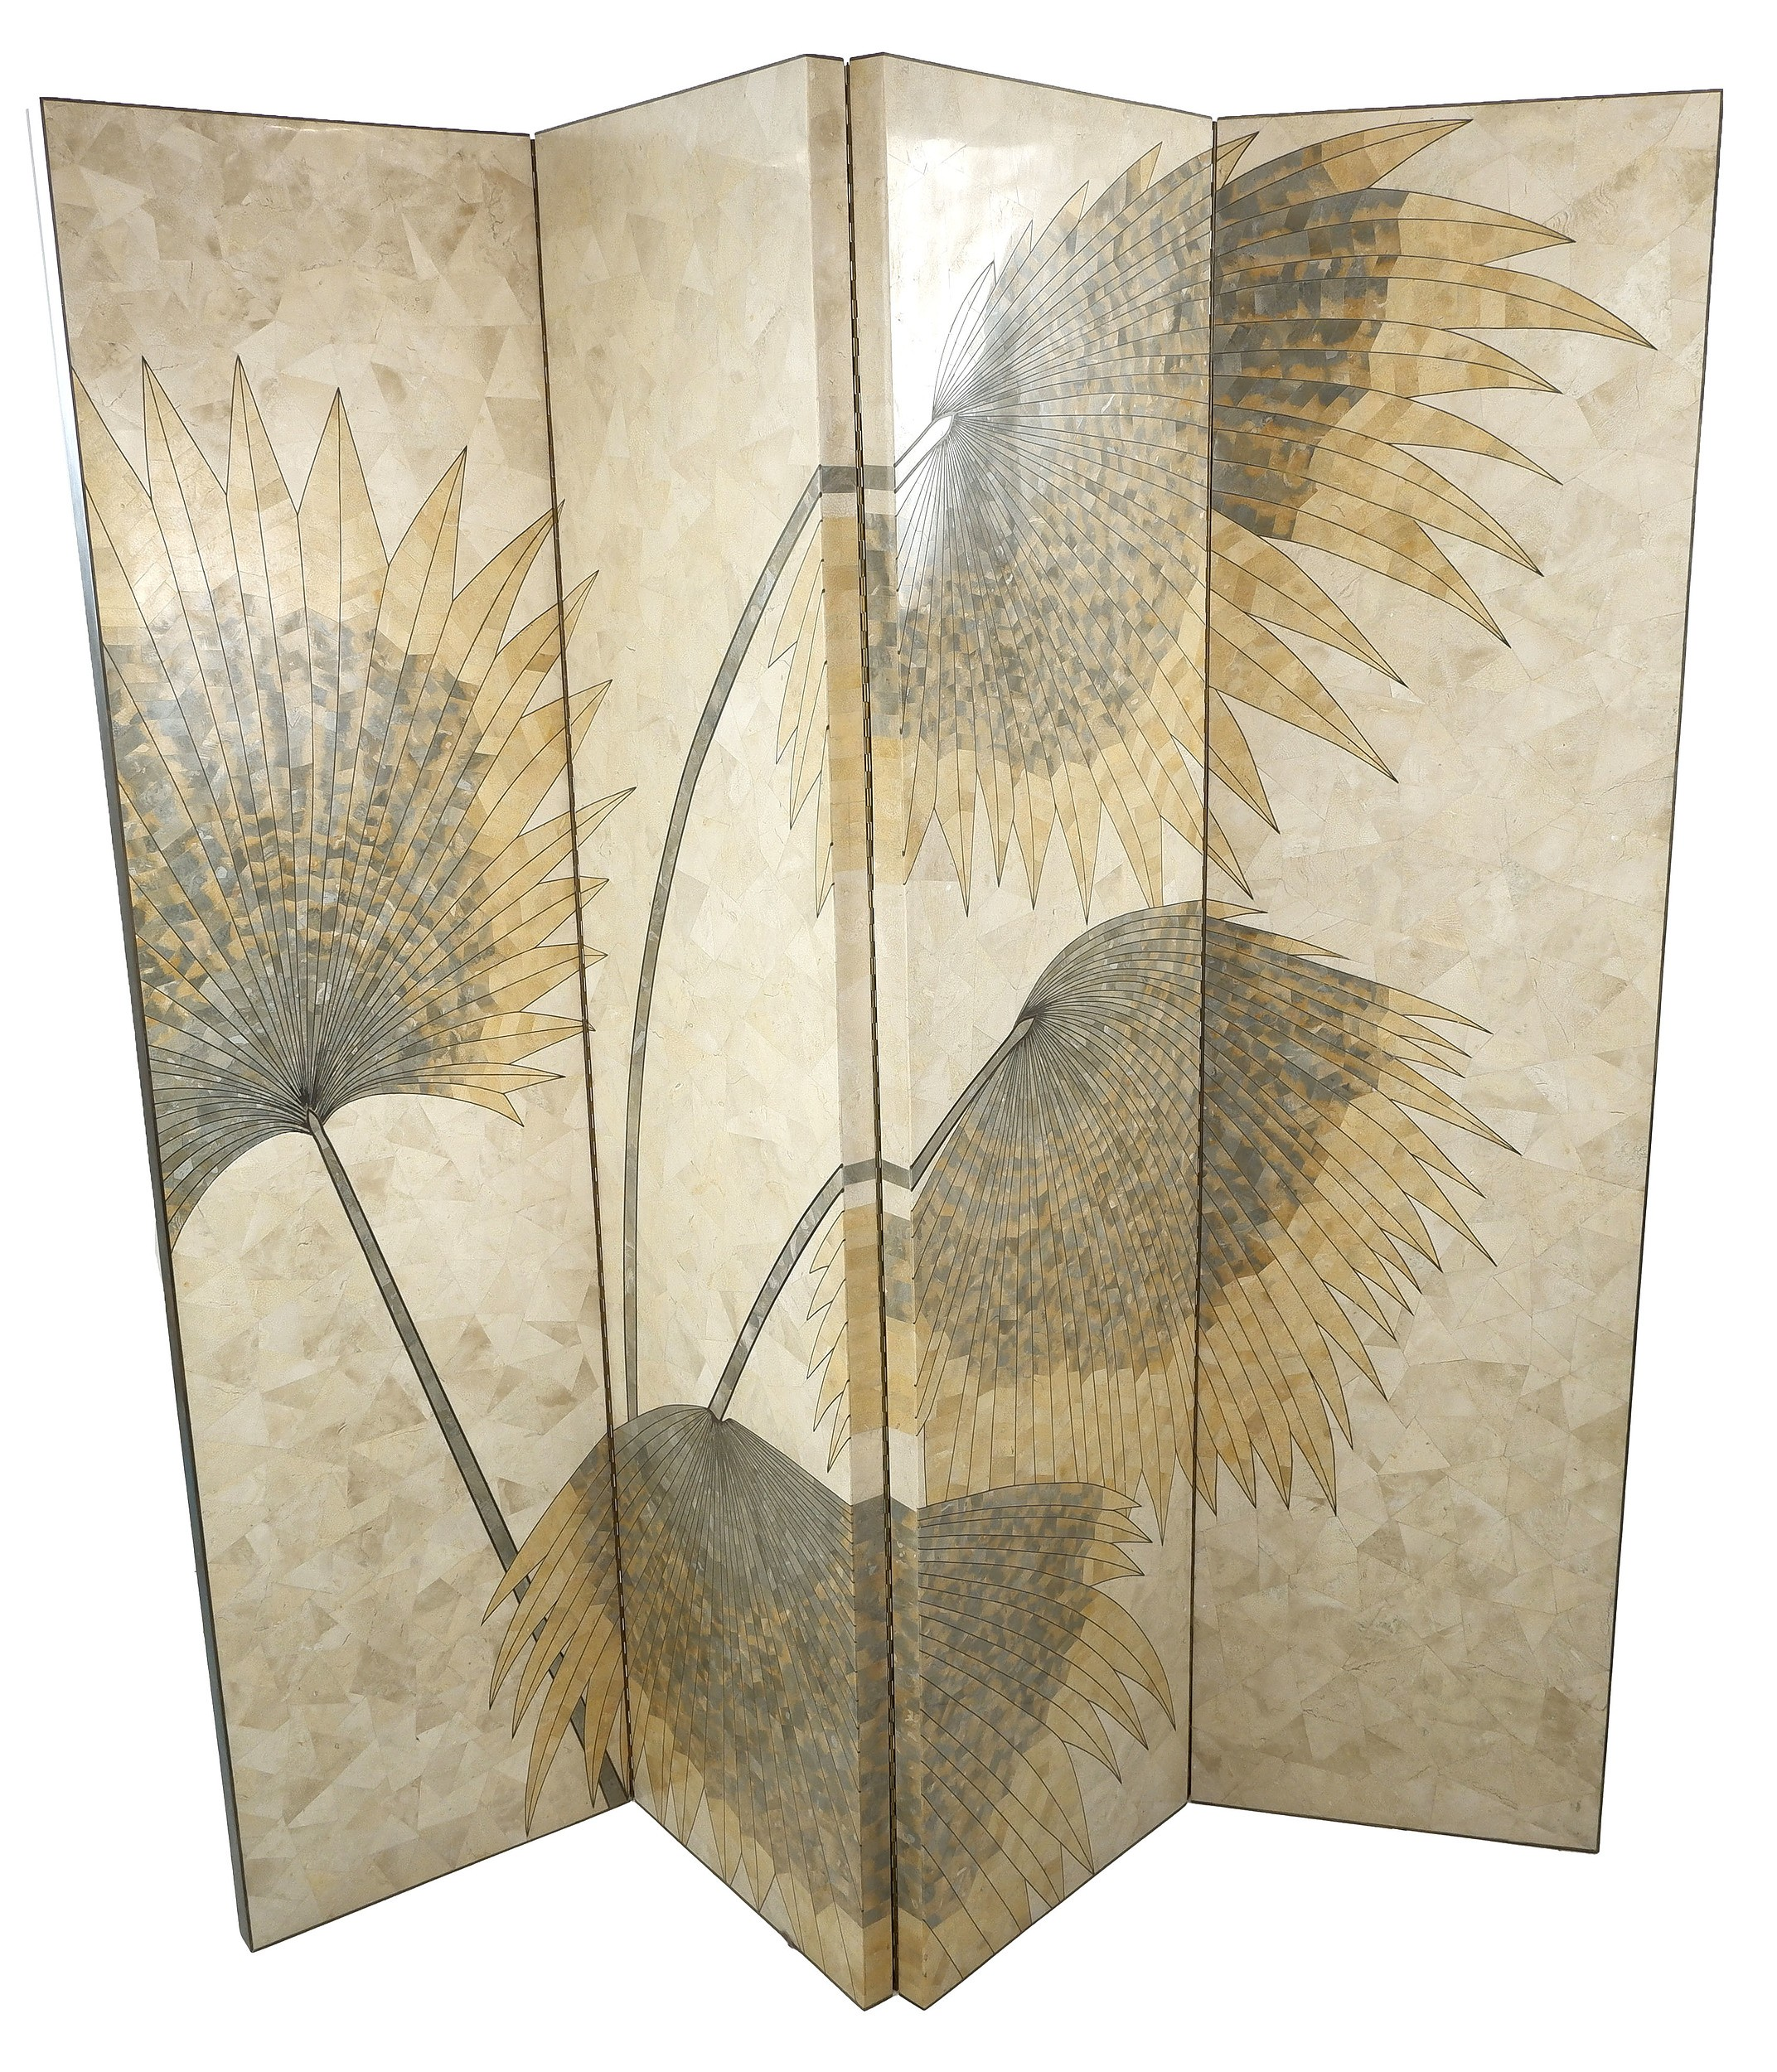 'Impressive Bespoke Marble and Stone Marquetry Inlaid Four-fold Floor Screen with Palm Leaf Design, Circa 1985'